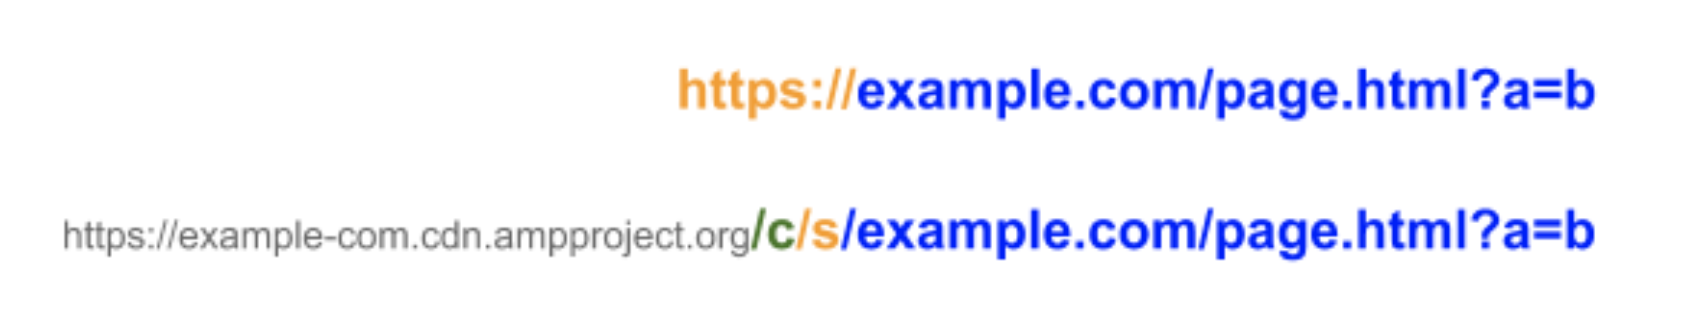 Image displaying cached URL formats